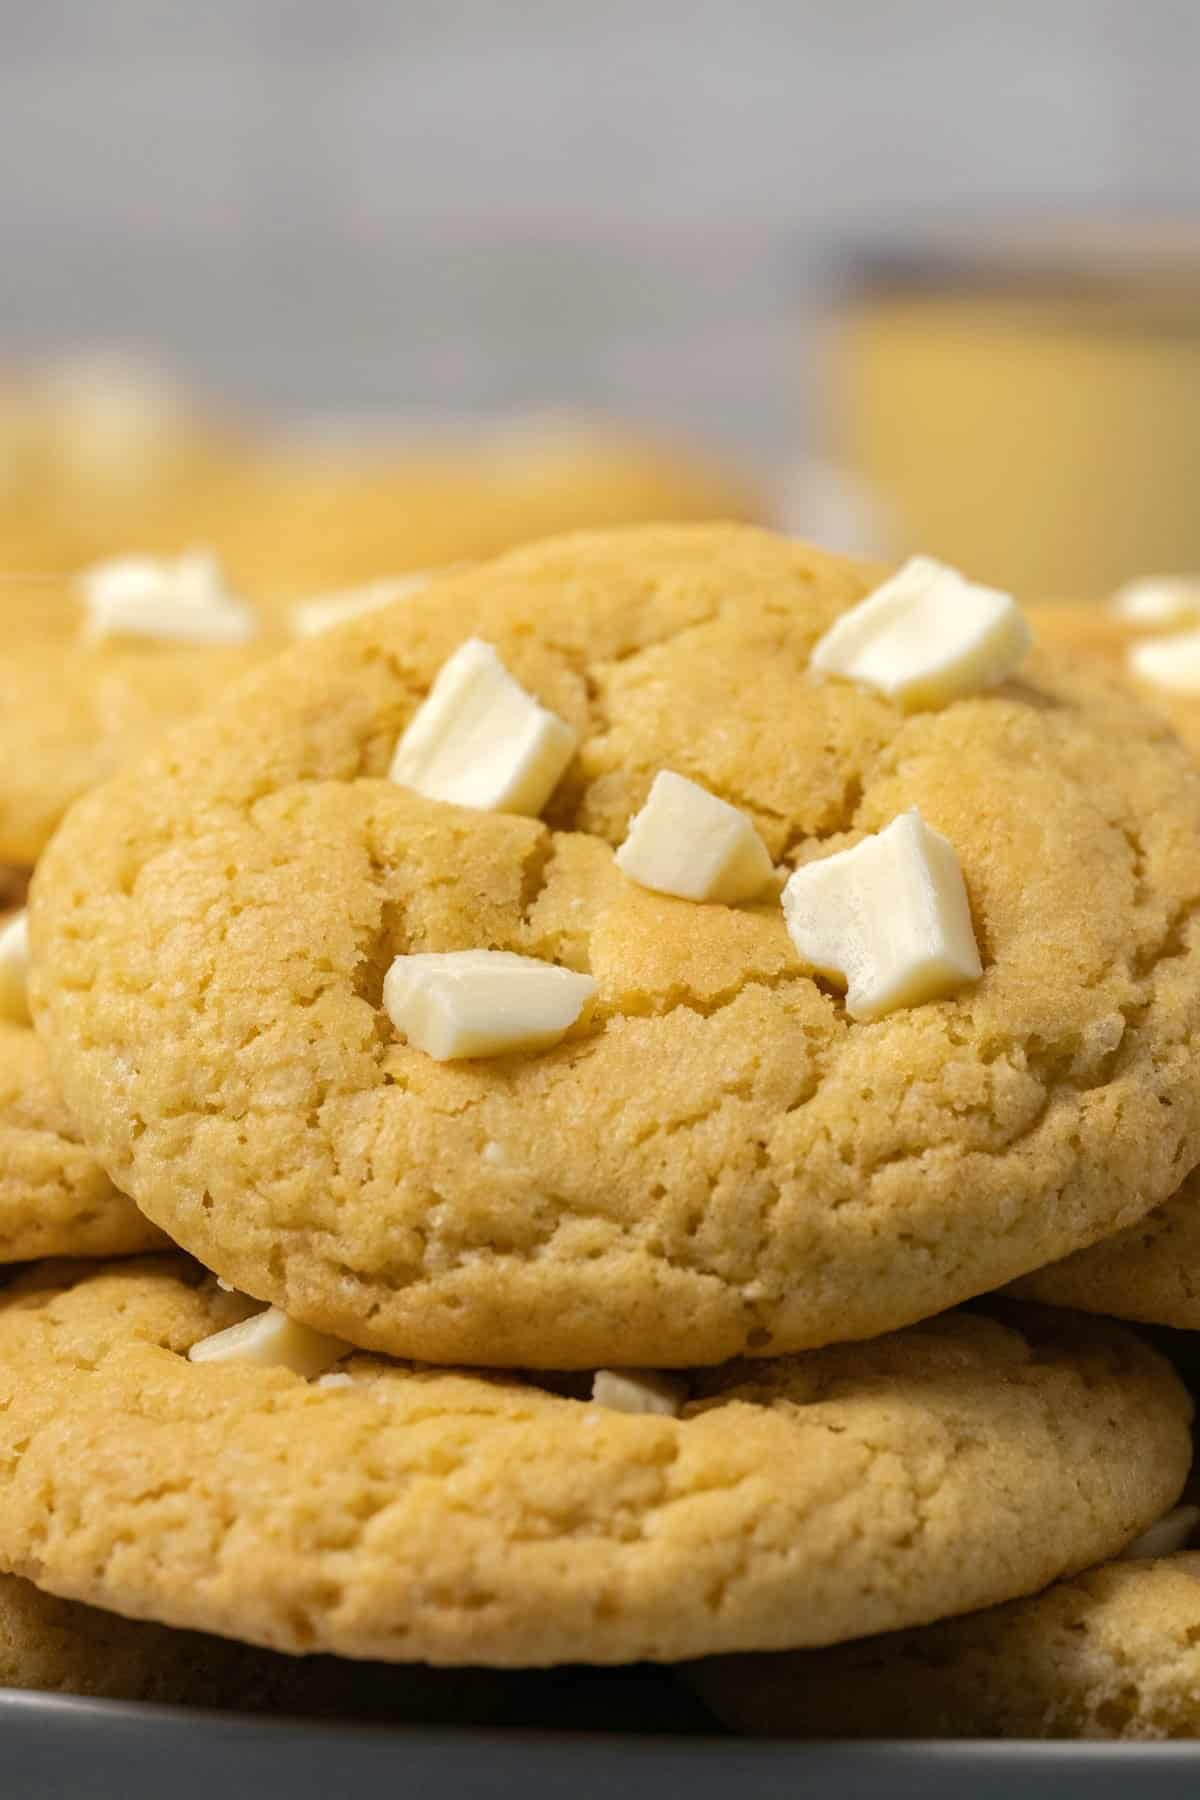 White chocolate chip cookies on a plate.